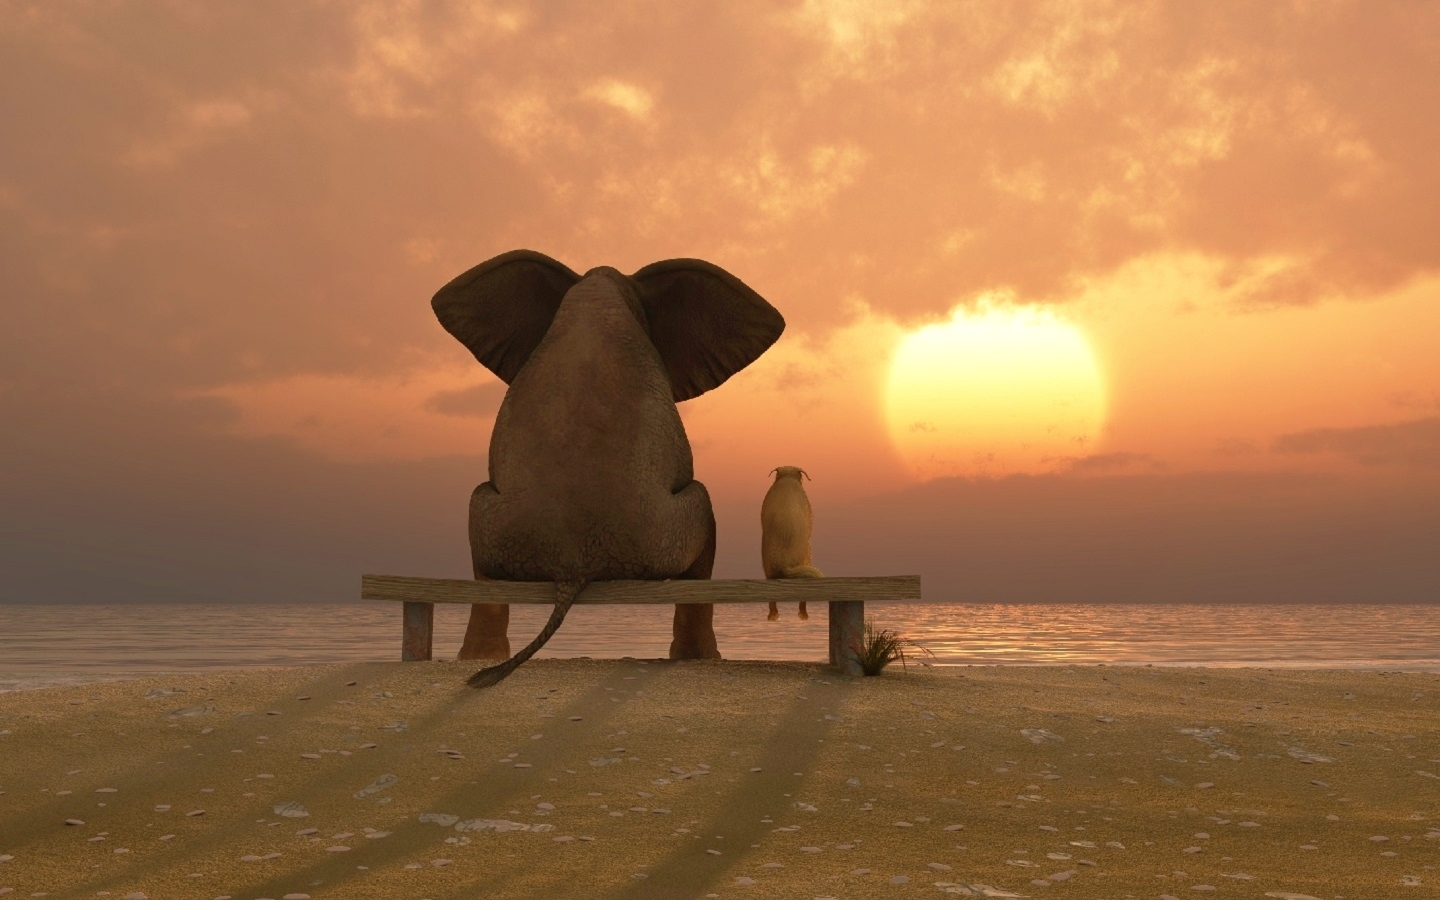 funny friends beach elephant dog sunset hd wallpaper | free images